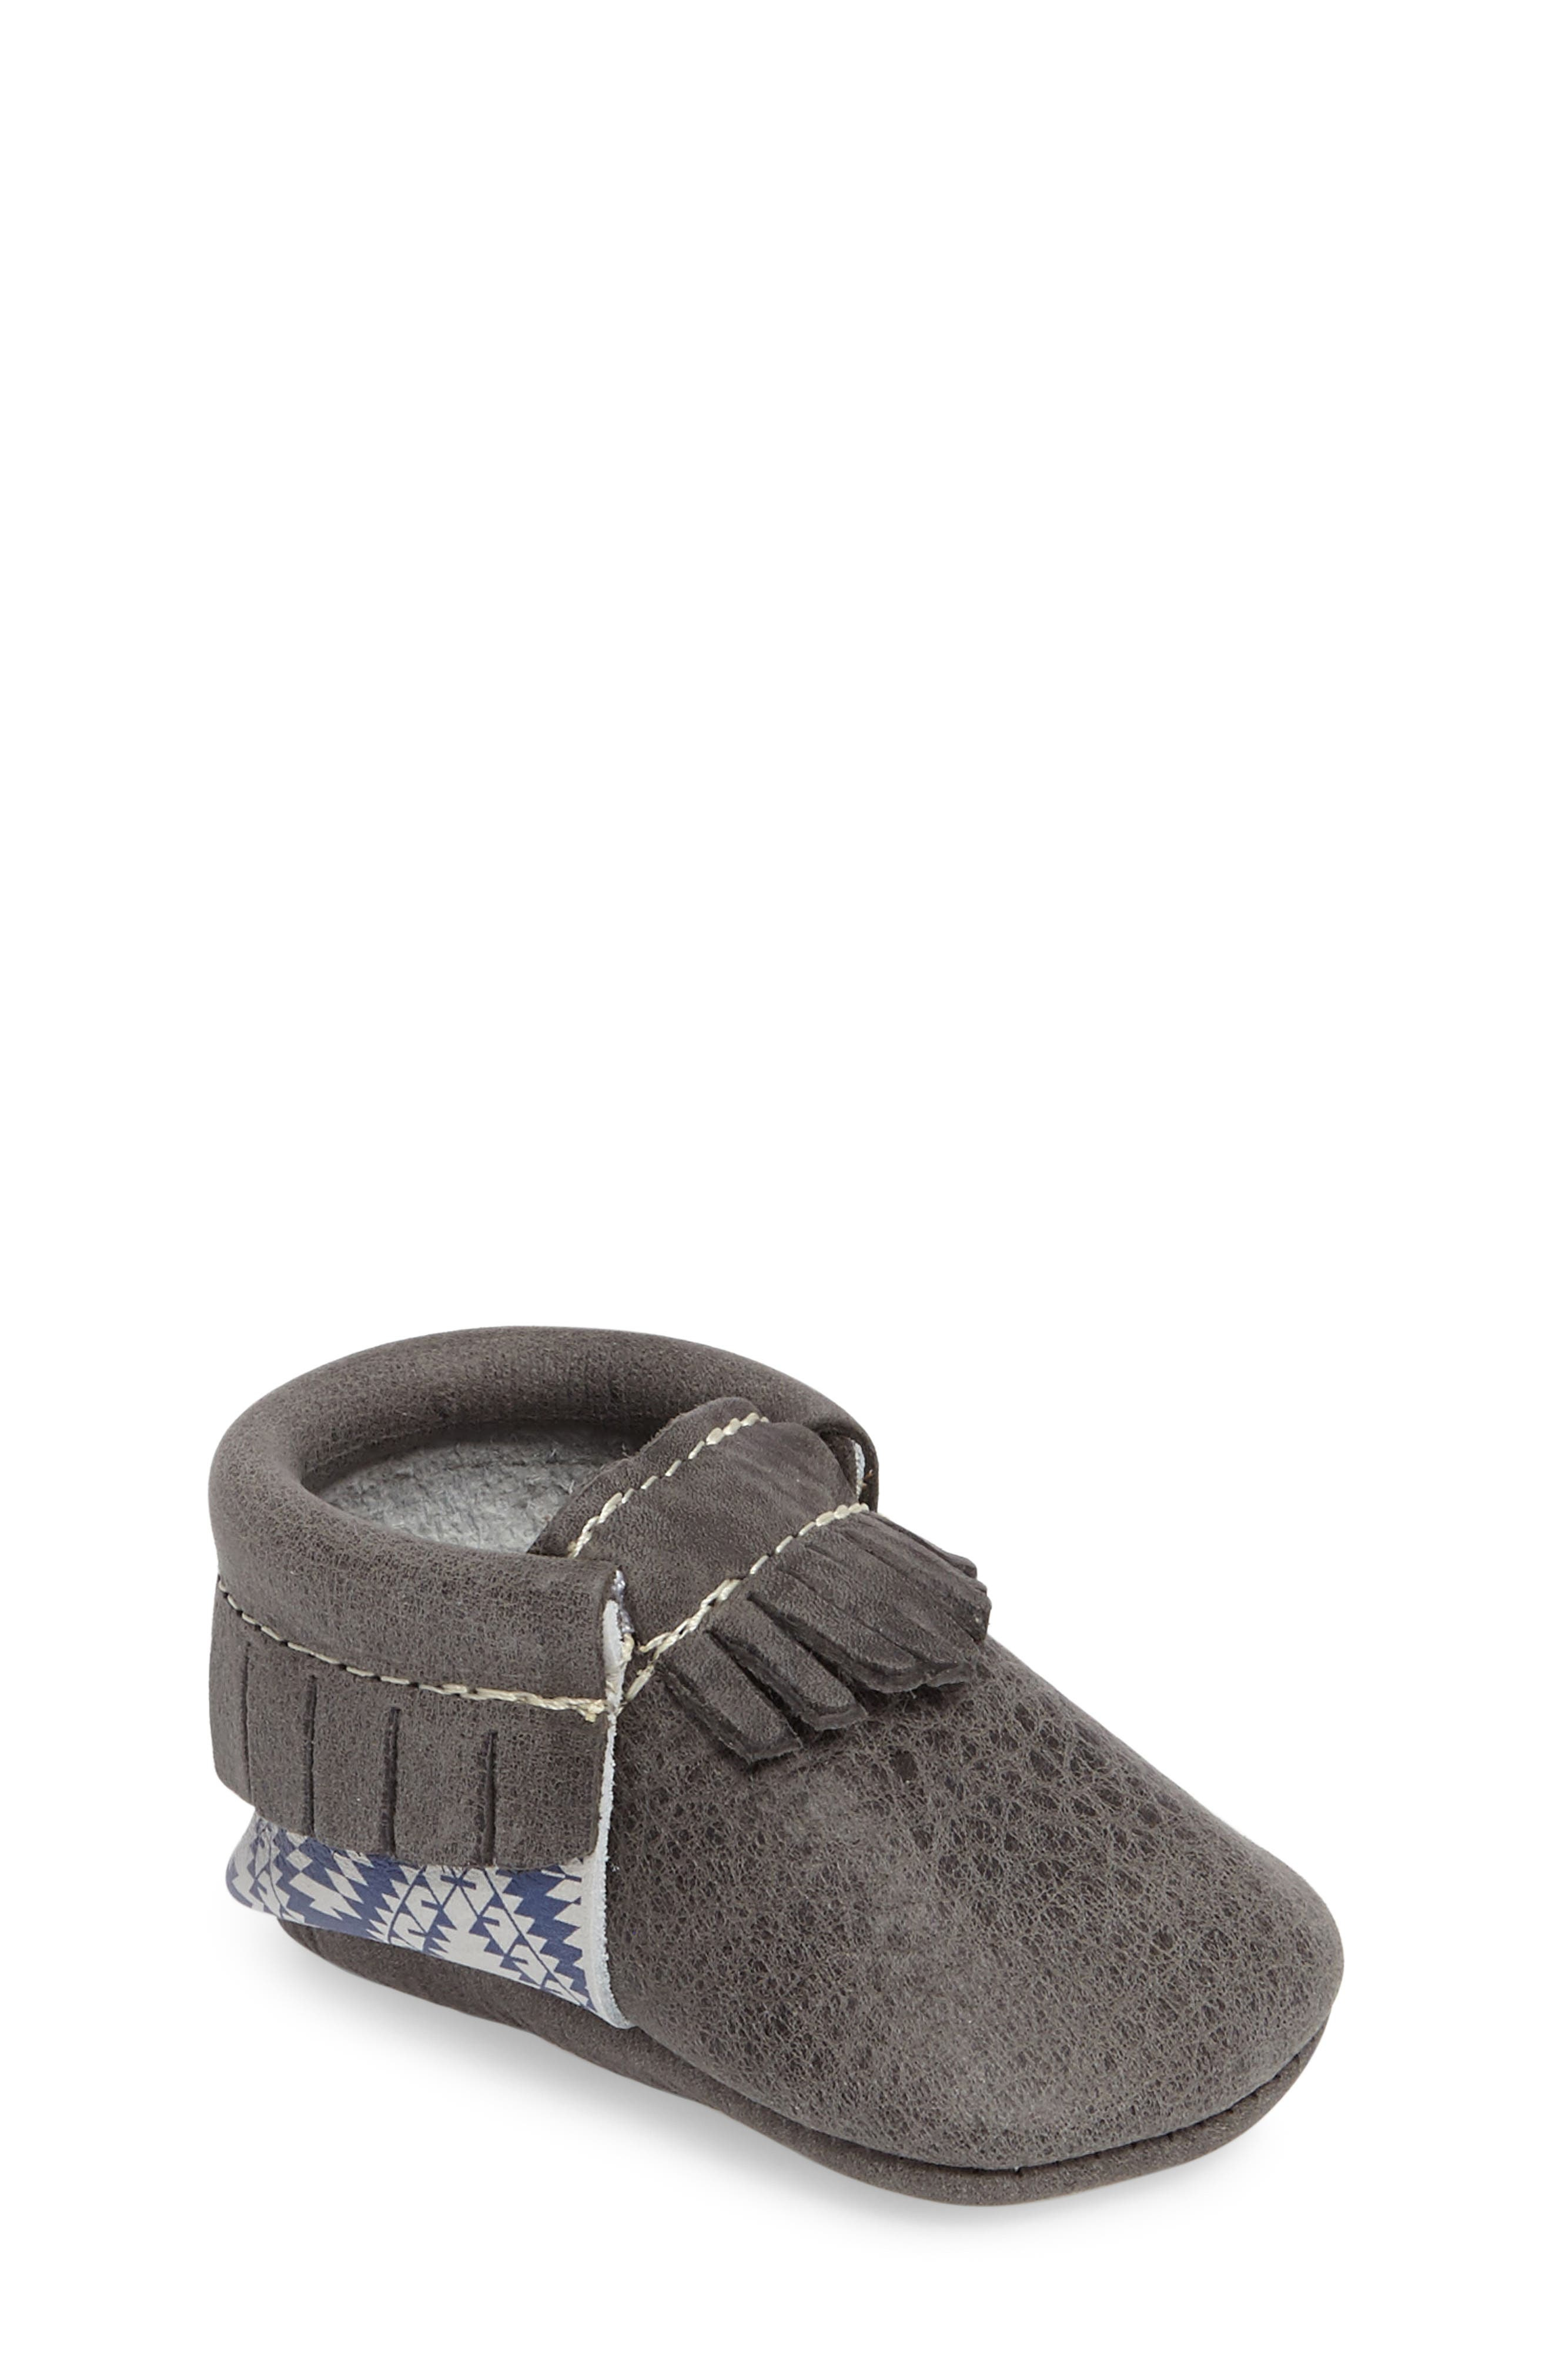 Leather Moccasin,                         Main,                         color, Dark Grey Leather